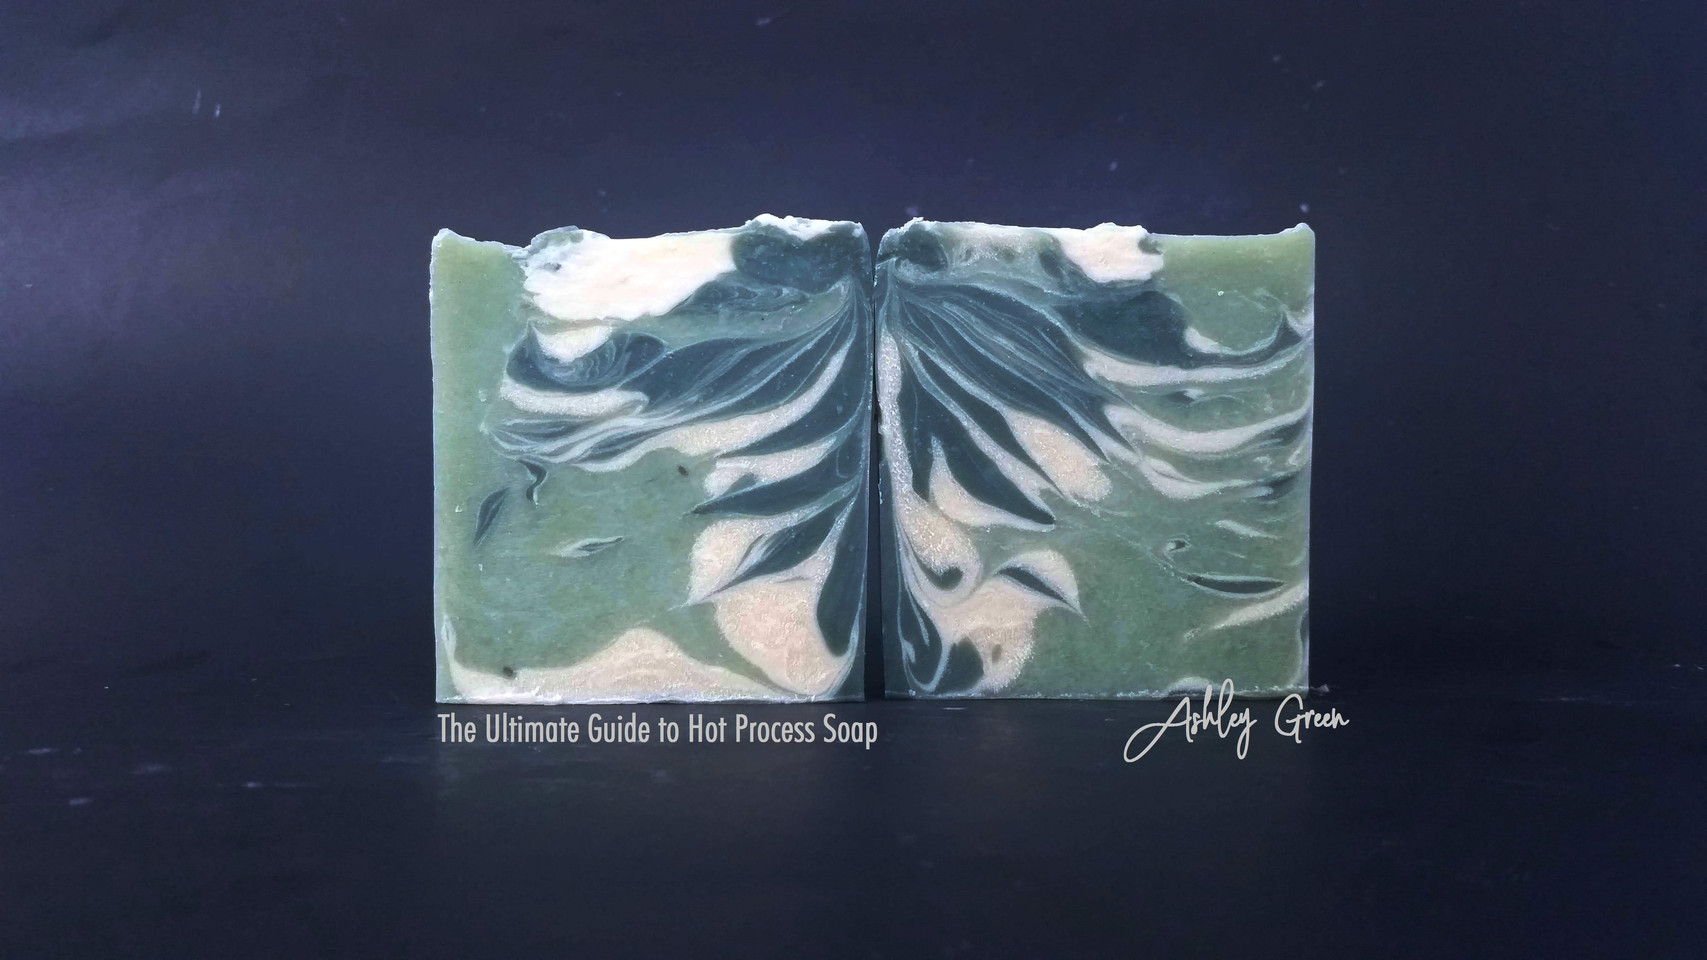 The Ultimate Guide to Hot Process Soap- Spa Serenity Image3.jpg